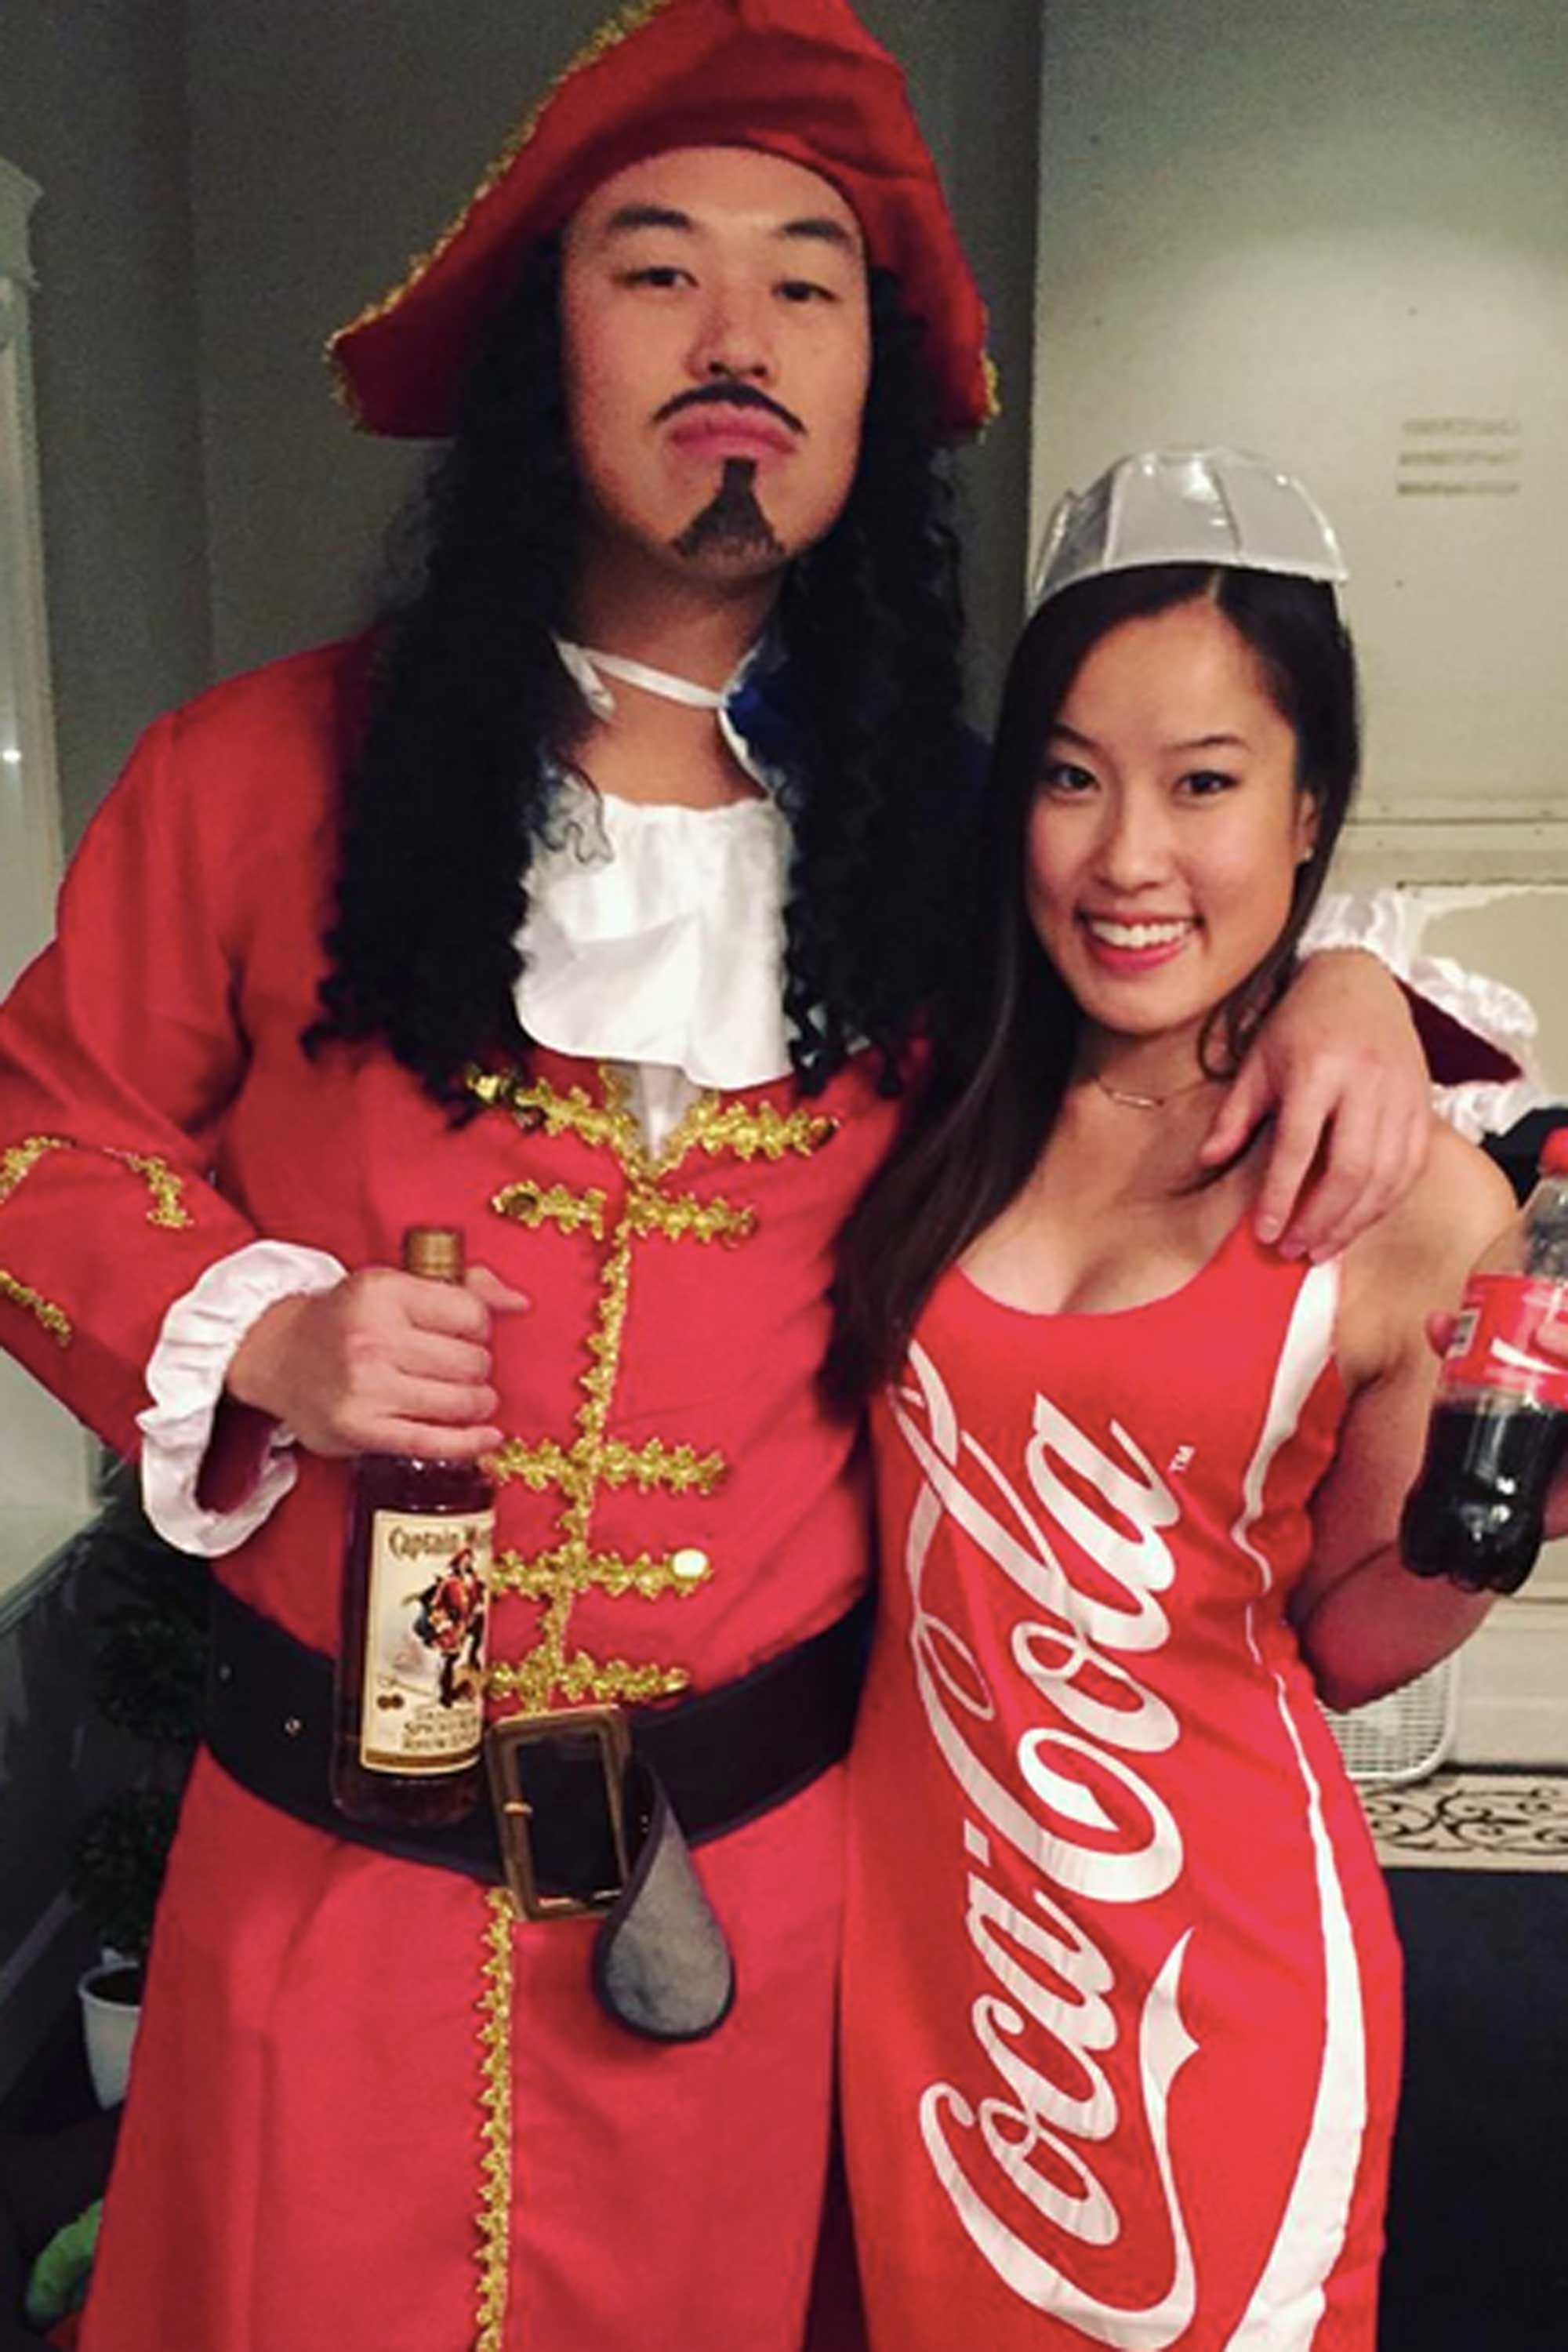 10 Attractive Cheap Couple Halloween Costume Ideas 42 adorably cheesy couples halloween costumes coke costumes and 2